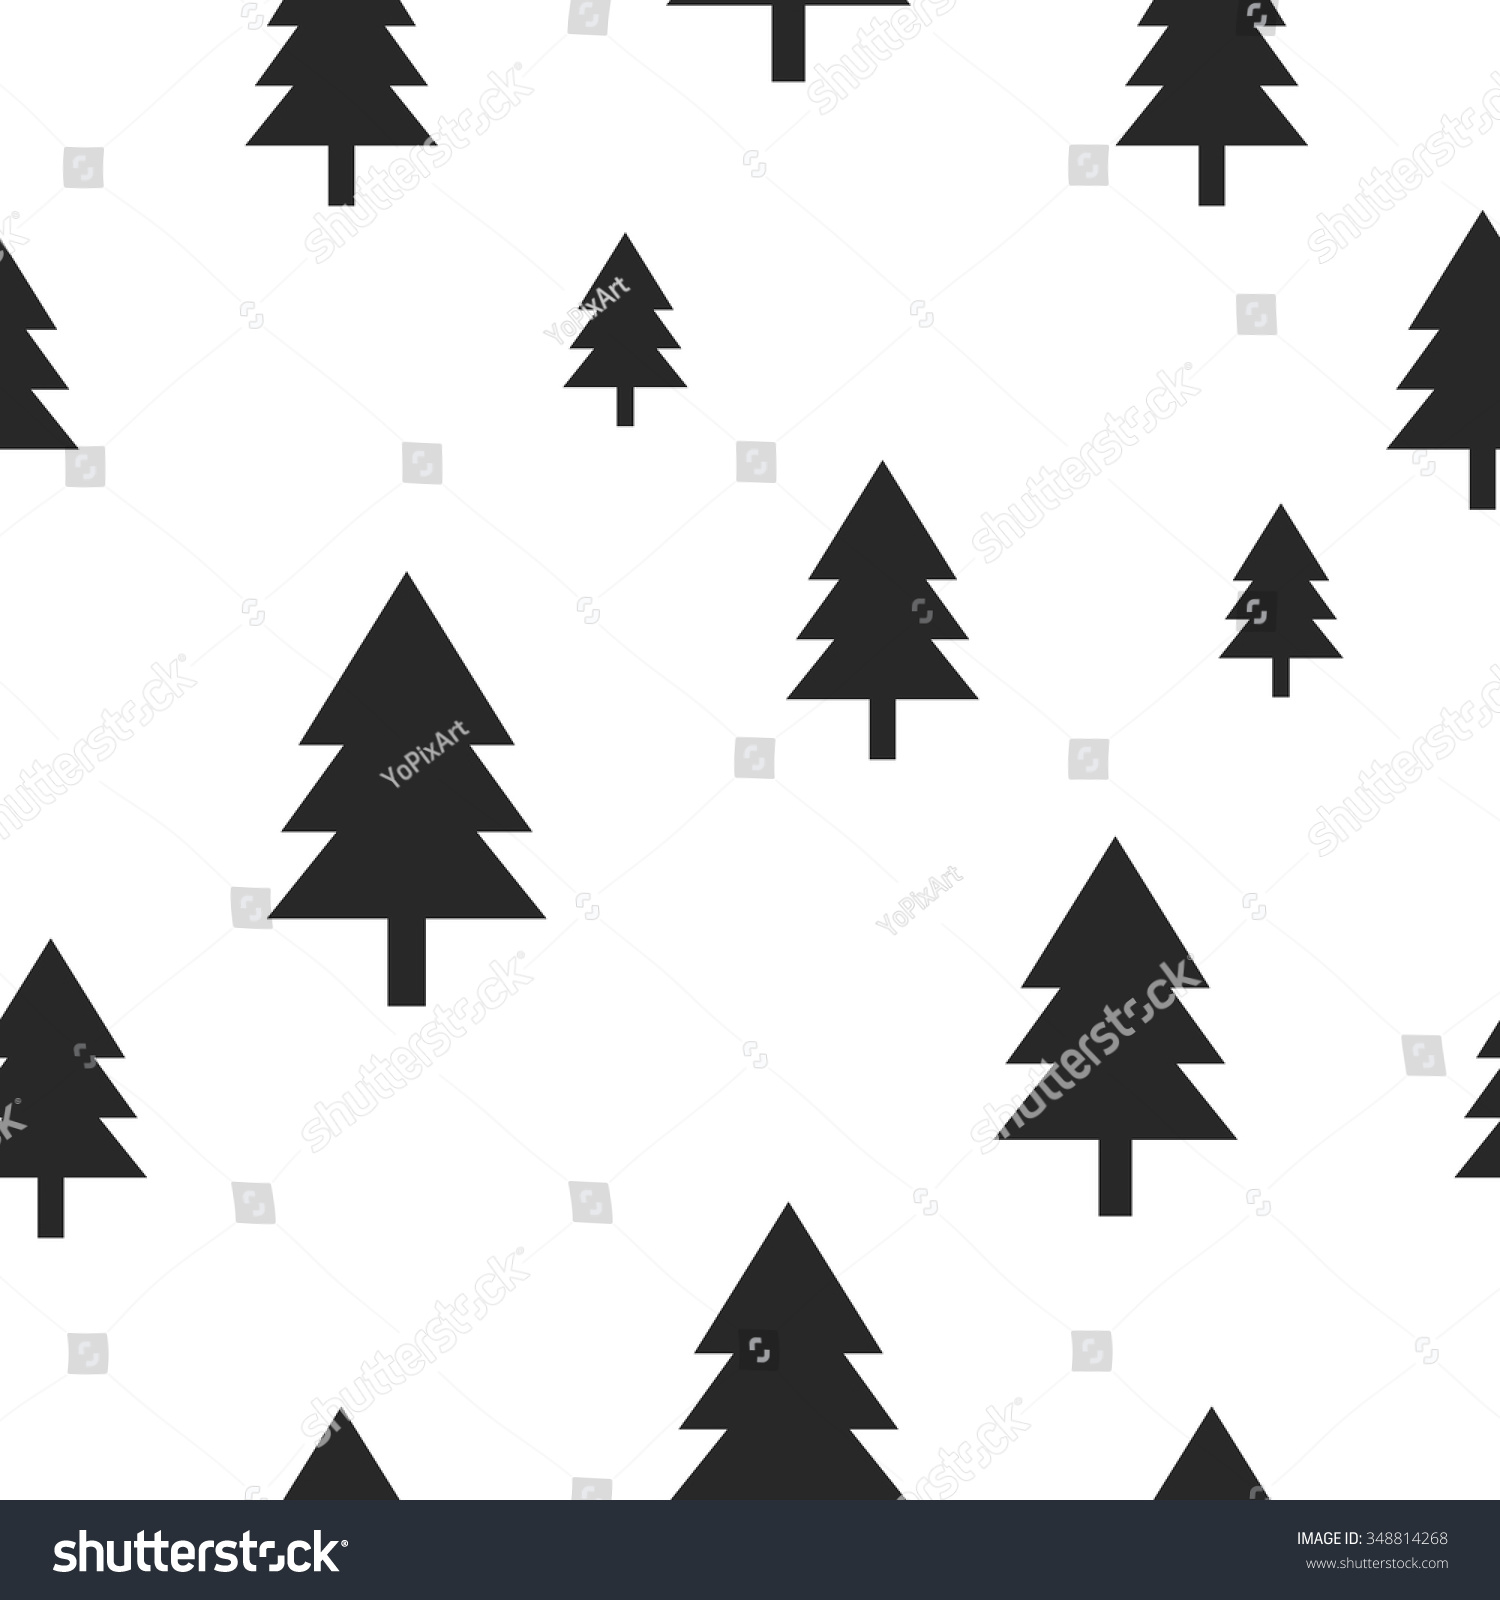 Seamless fir tree scandinavian pattern textile background wrapping - Scandinavian Black Forest Tree On White Vector Seamless Pattern Simple And Trendy Design For Textile